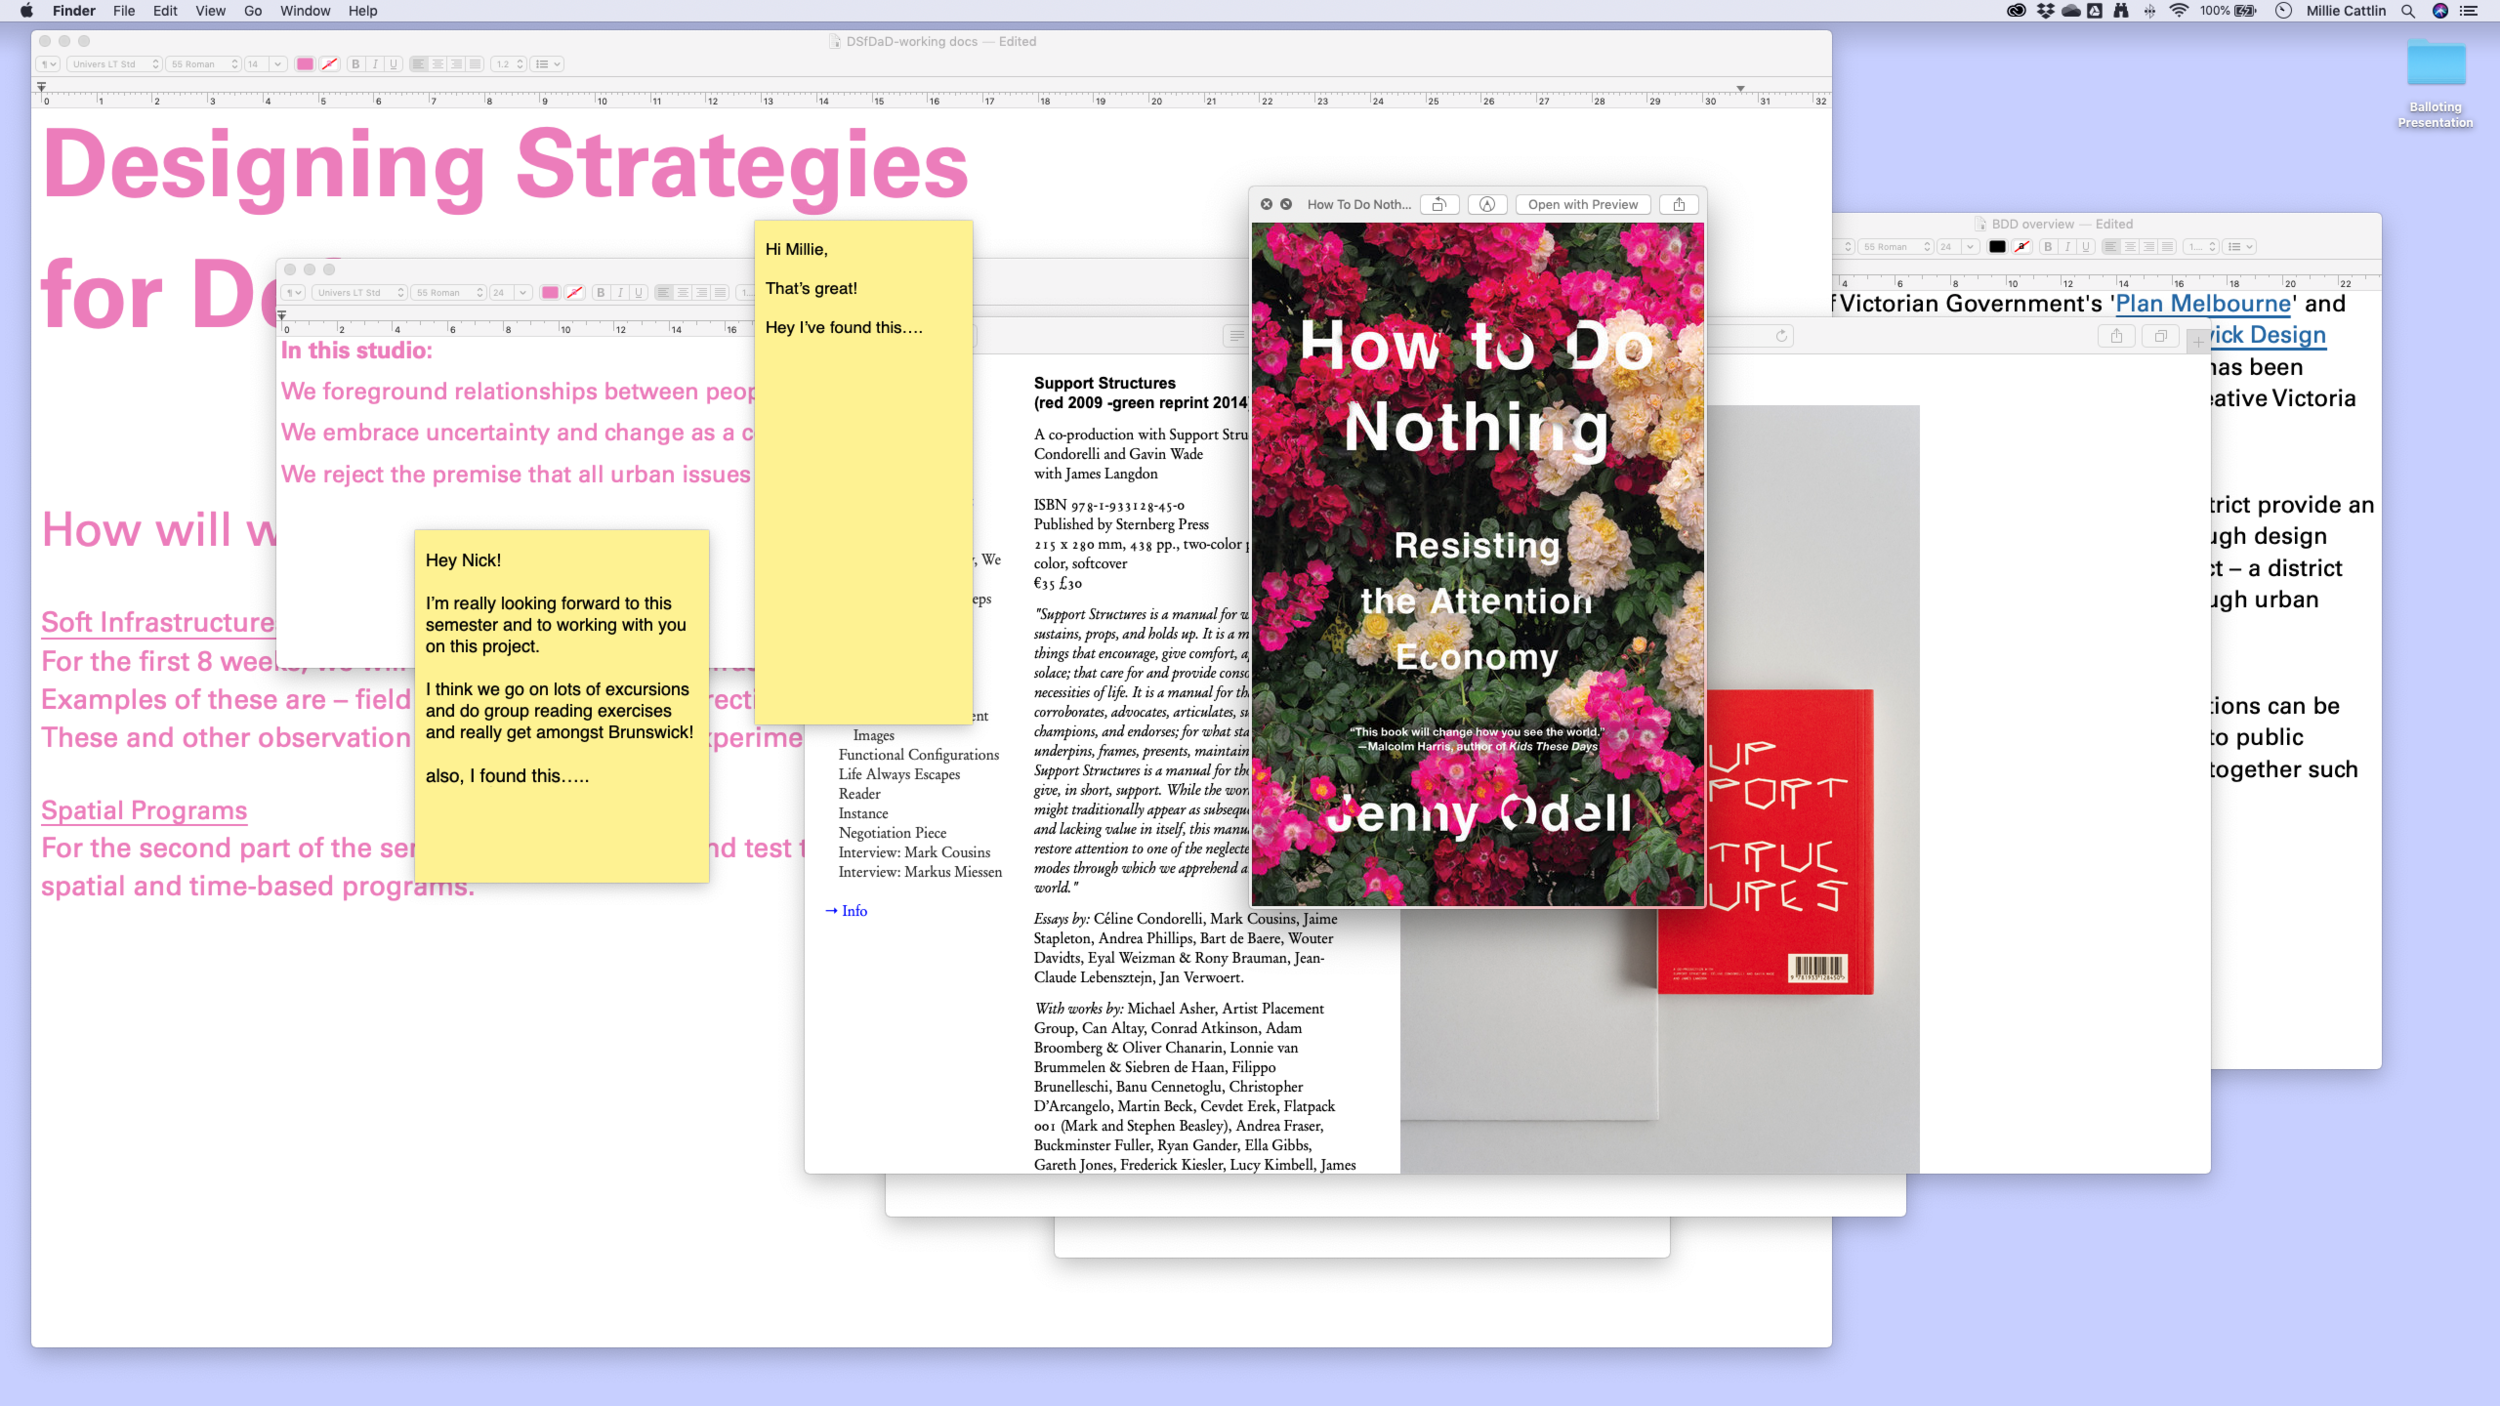 Image: Millie Cattlin + Nick Rebstadt in process of designing strategies for  Designing Strategies for Defining A District*  (2019)